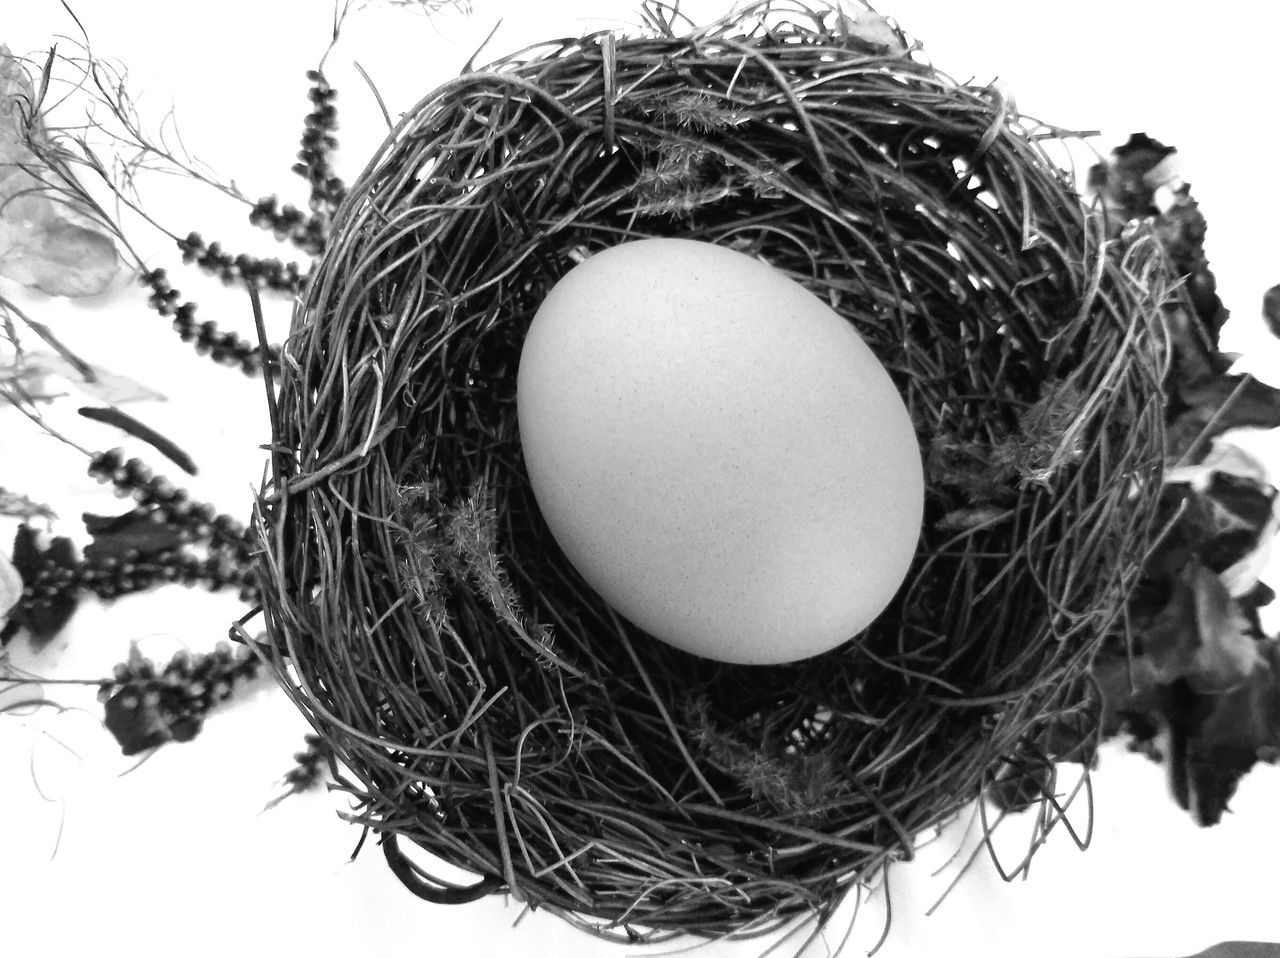 B&W Nest Animal Egg Animal Nest Bird Nest Black And White Photography Celebration Close-up Day Easter Easter Egg Egg Fragility Holiday - Event Indoors  MUR B&W Nature Nest New Life No People The Song Of Light BYOPaper!